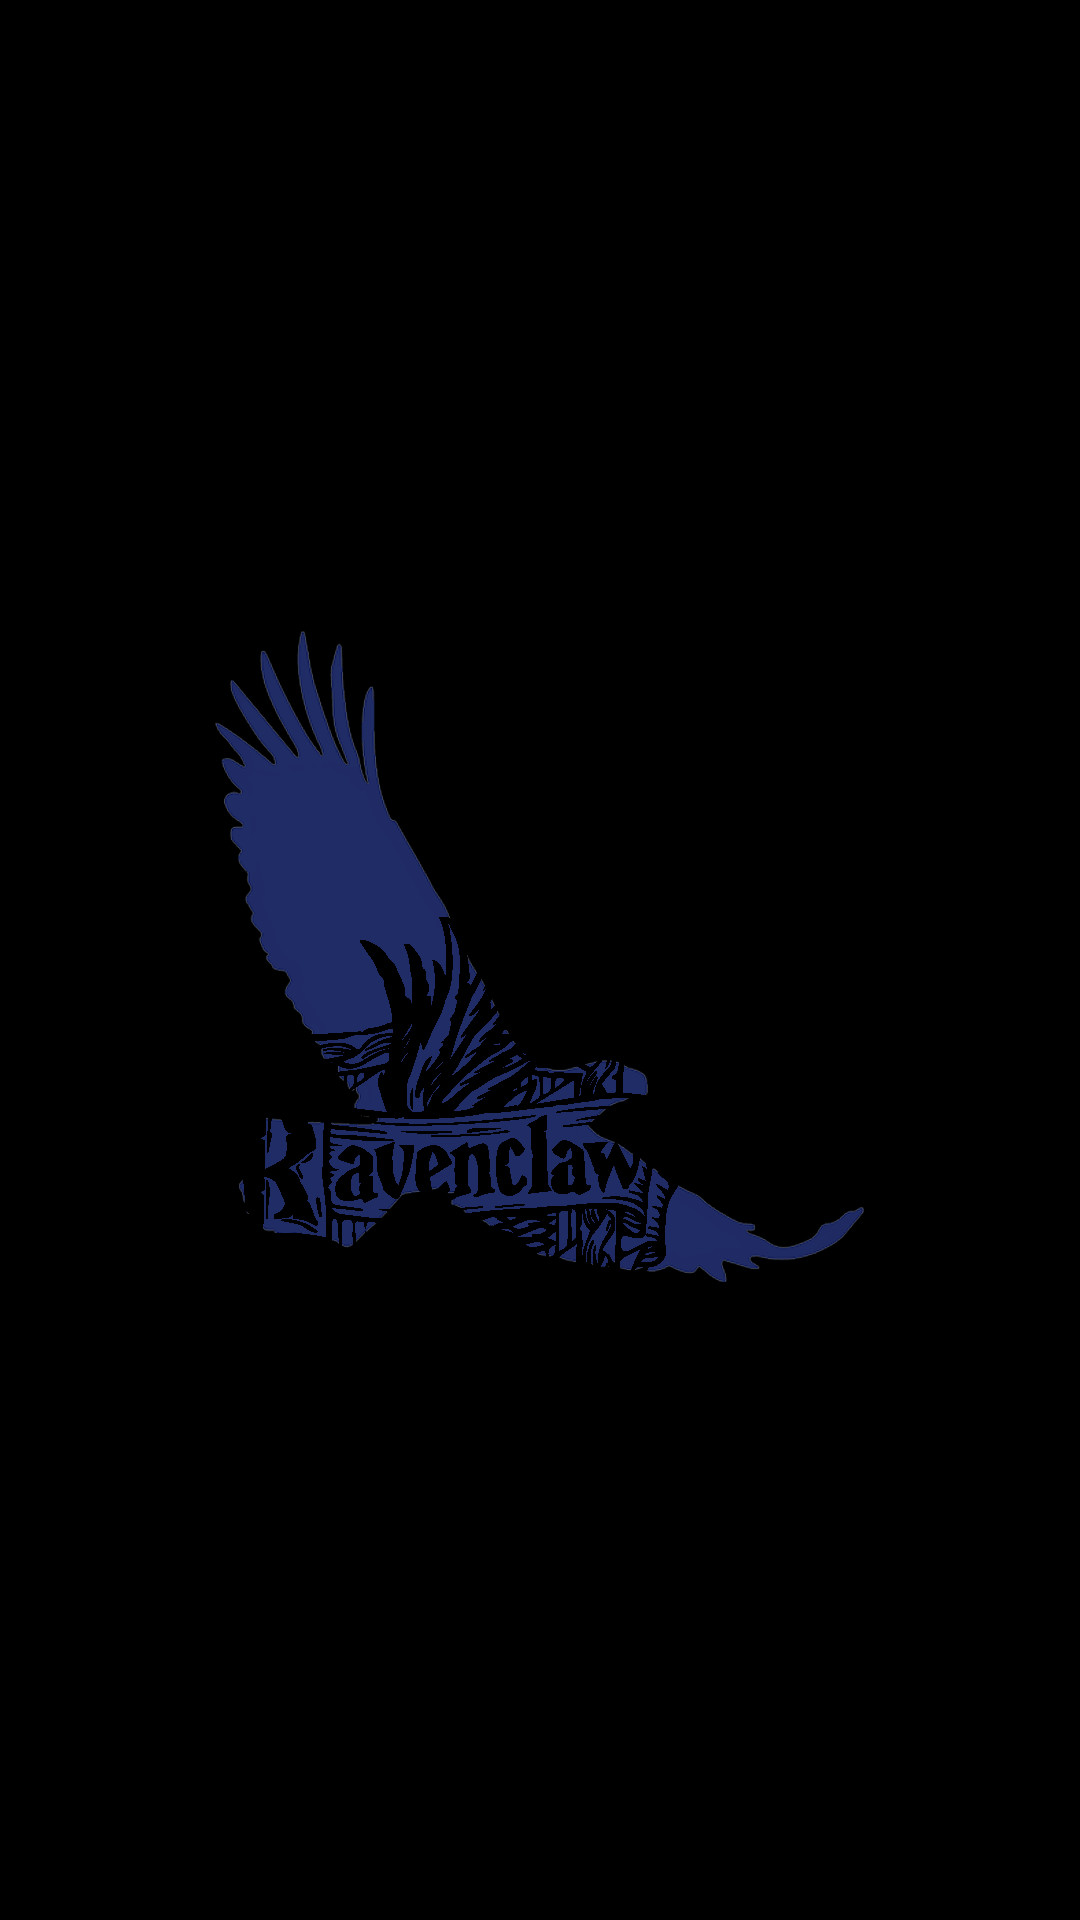 1080x1920 Ravenclaw Harry Potter Universal, Harry Potter World, Dessin Harry Potter, Harry  Potter Wallpaper